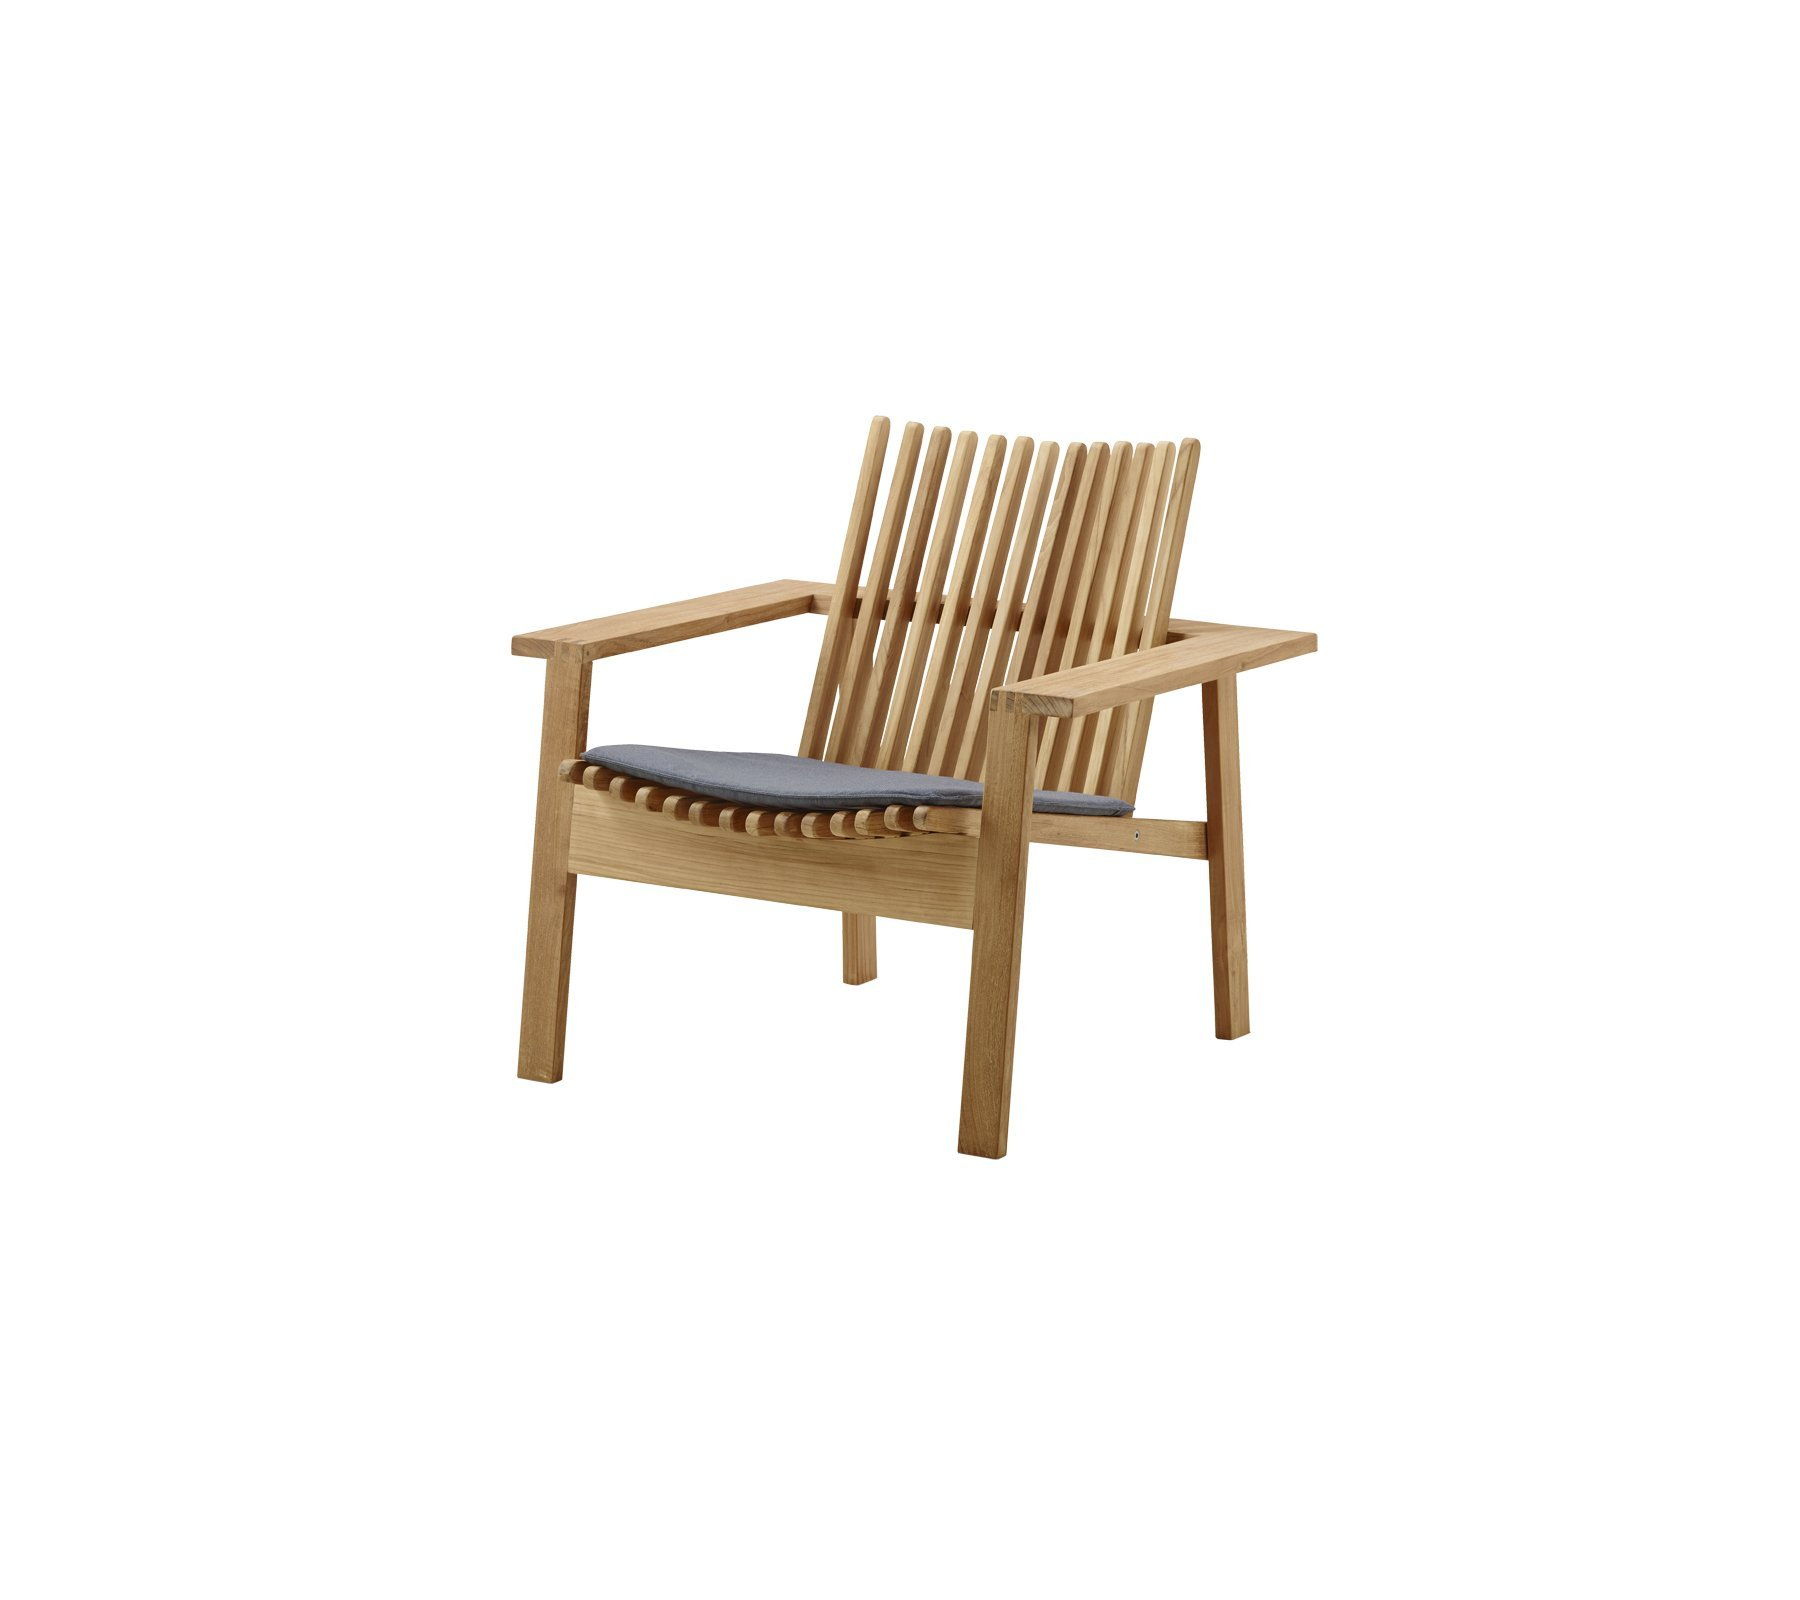 Amaze Lounge Chair from Cane-line